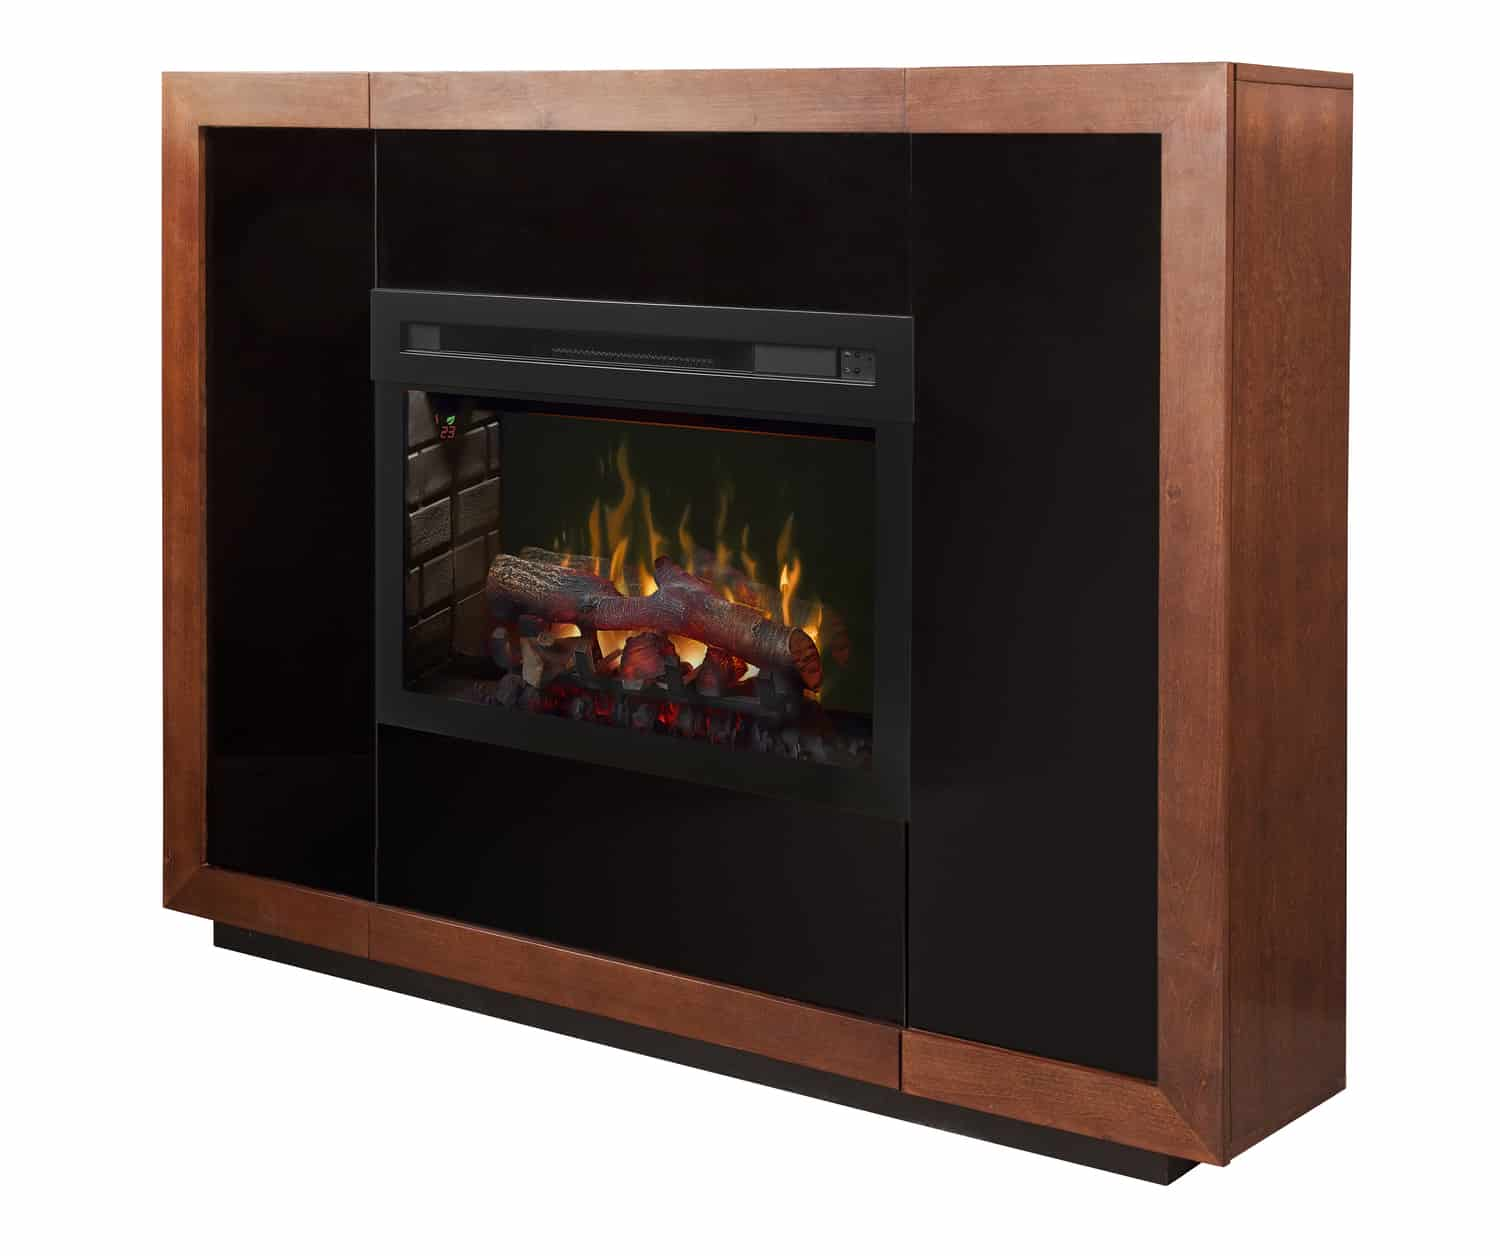 Terrific Electric Fireplaces With Storage Stylish Fireplaces Home Interior And Landscaping Ologienasavecom